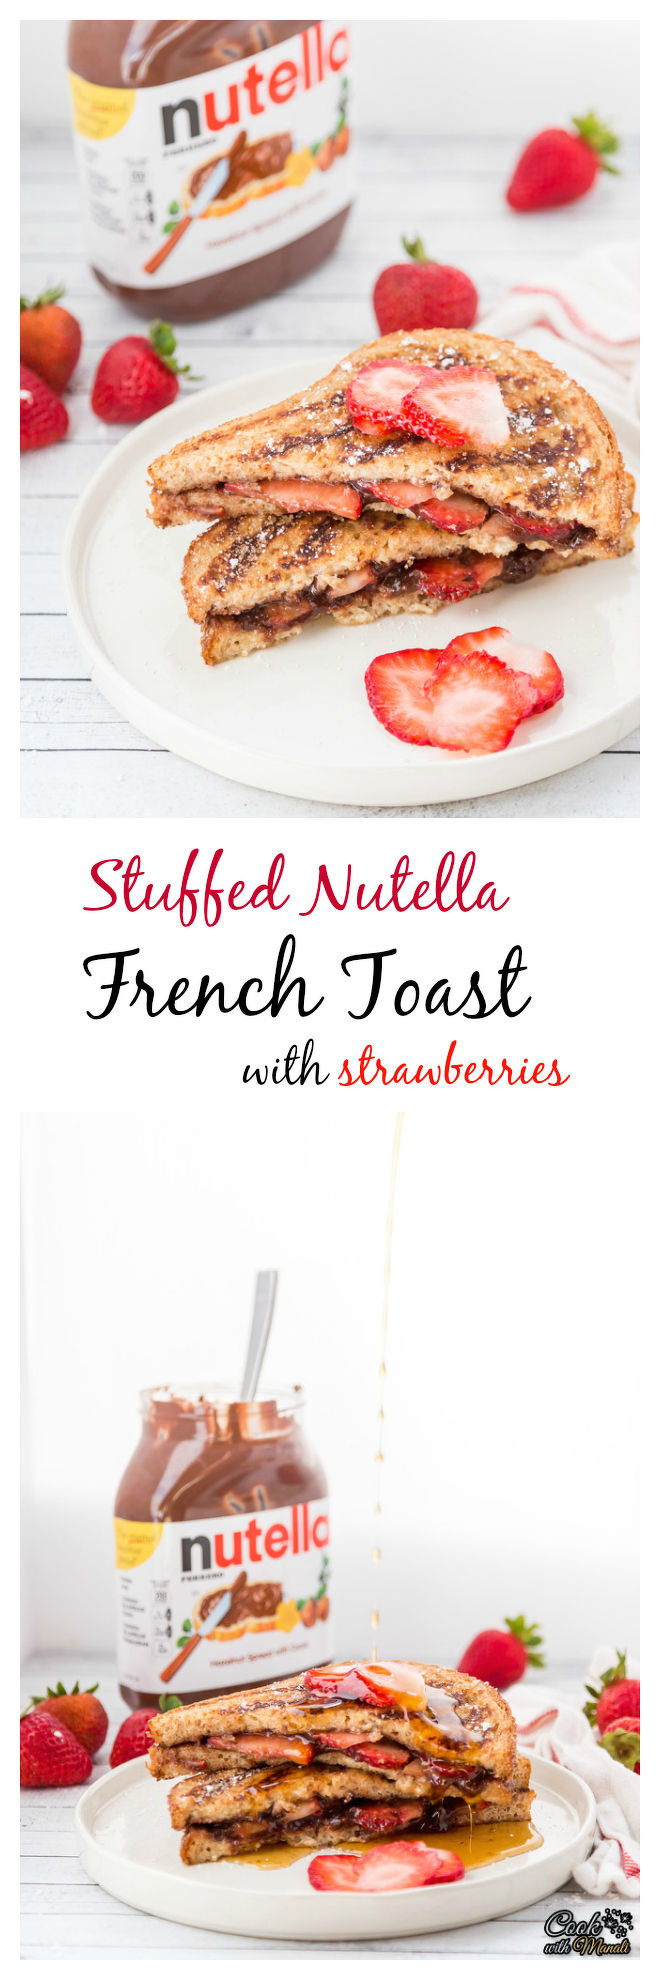 Nutella French Toast Collage-nocwm